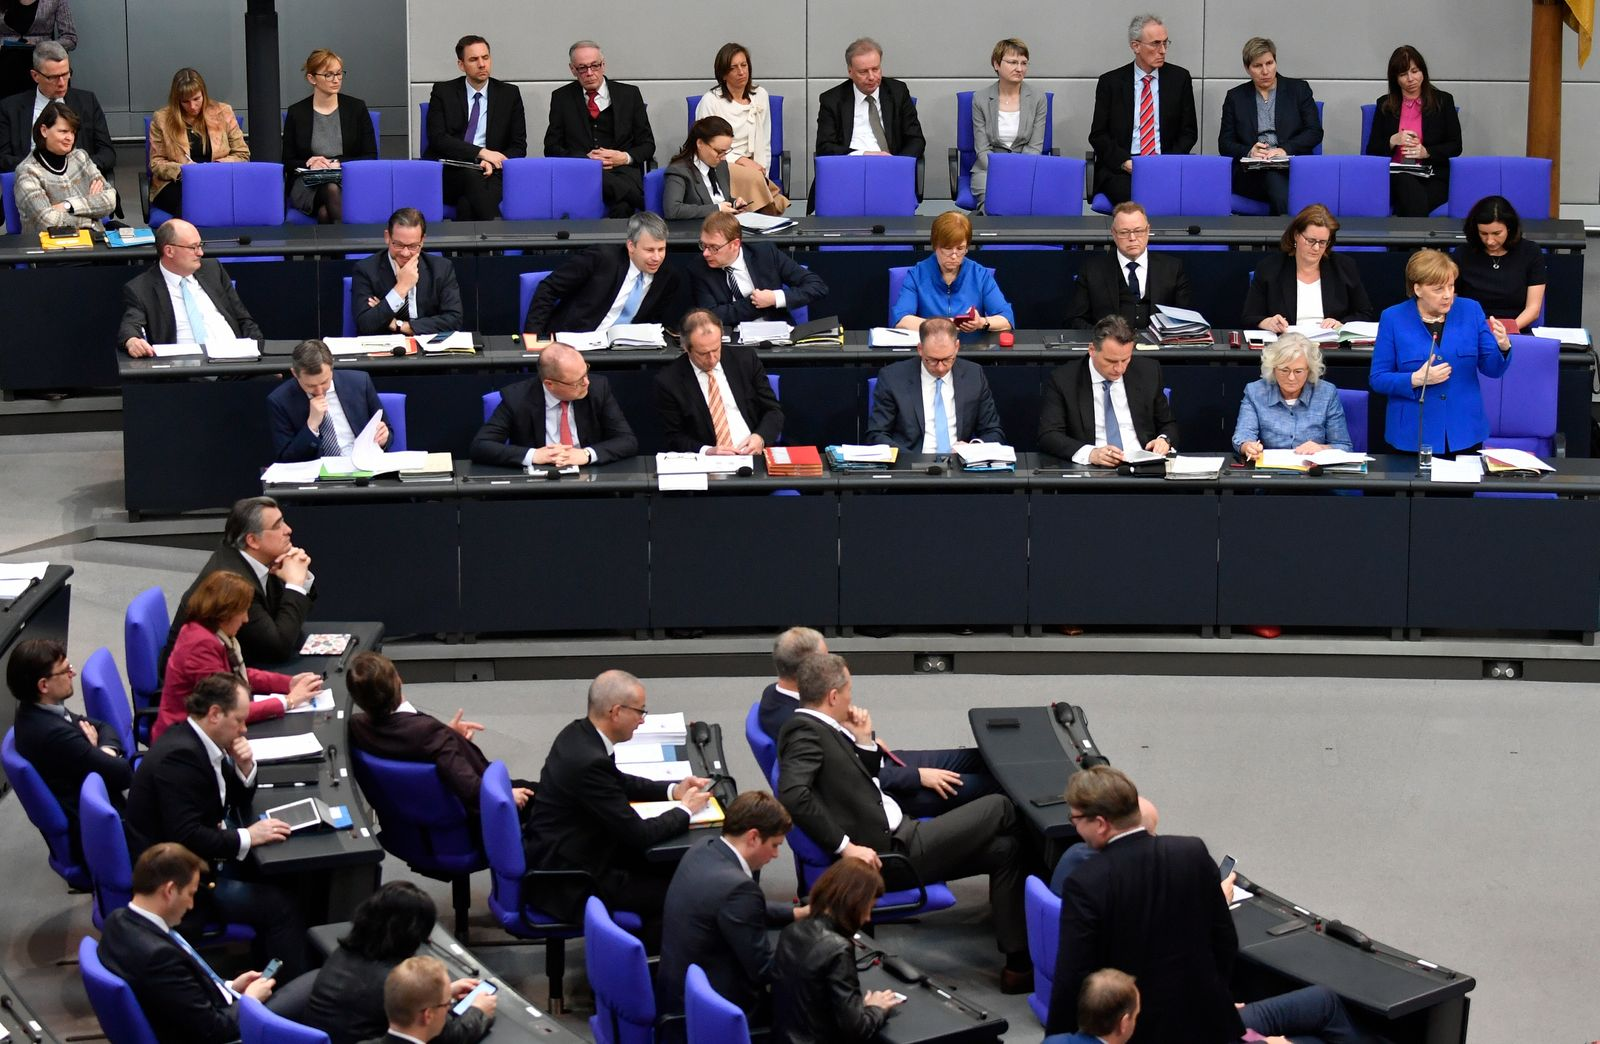 Chancellor Merkel answers MPs' questions ahead of key EU summit on Brexit